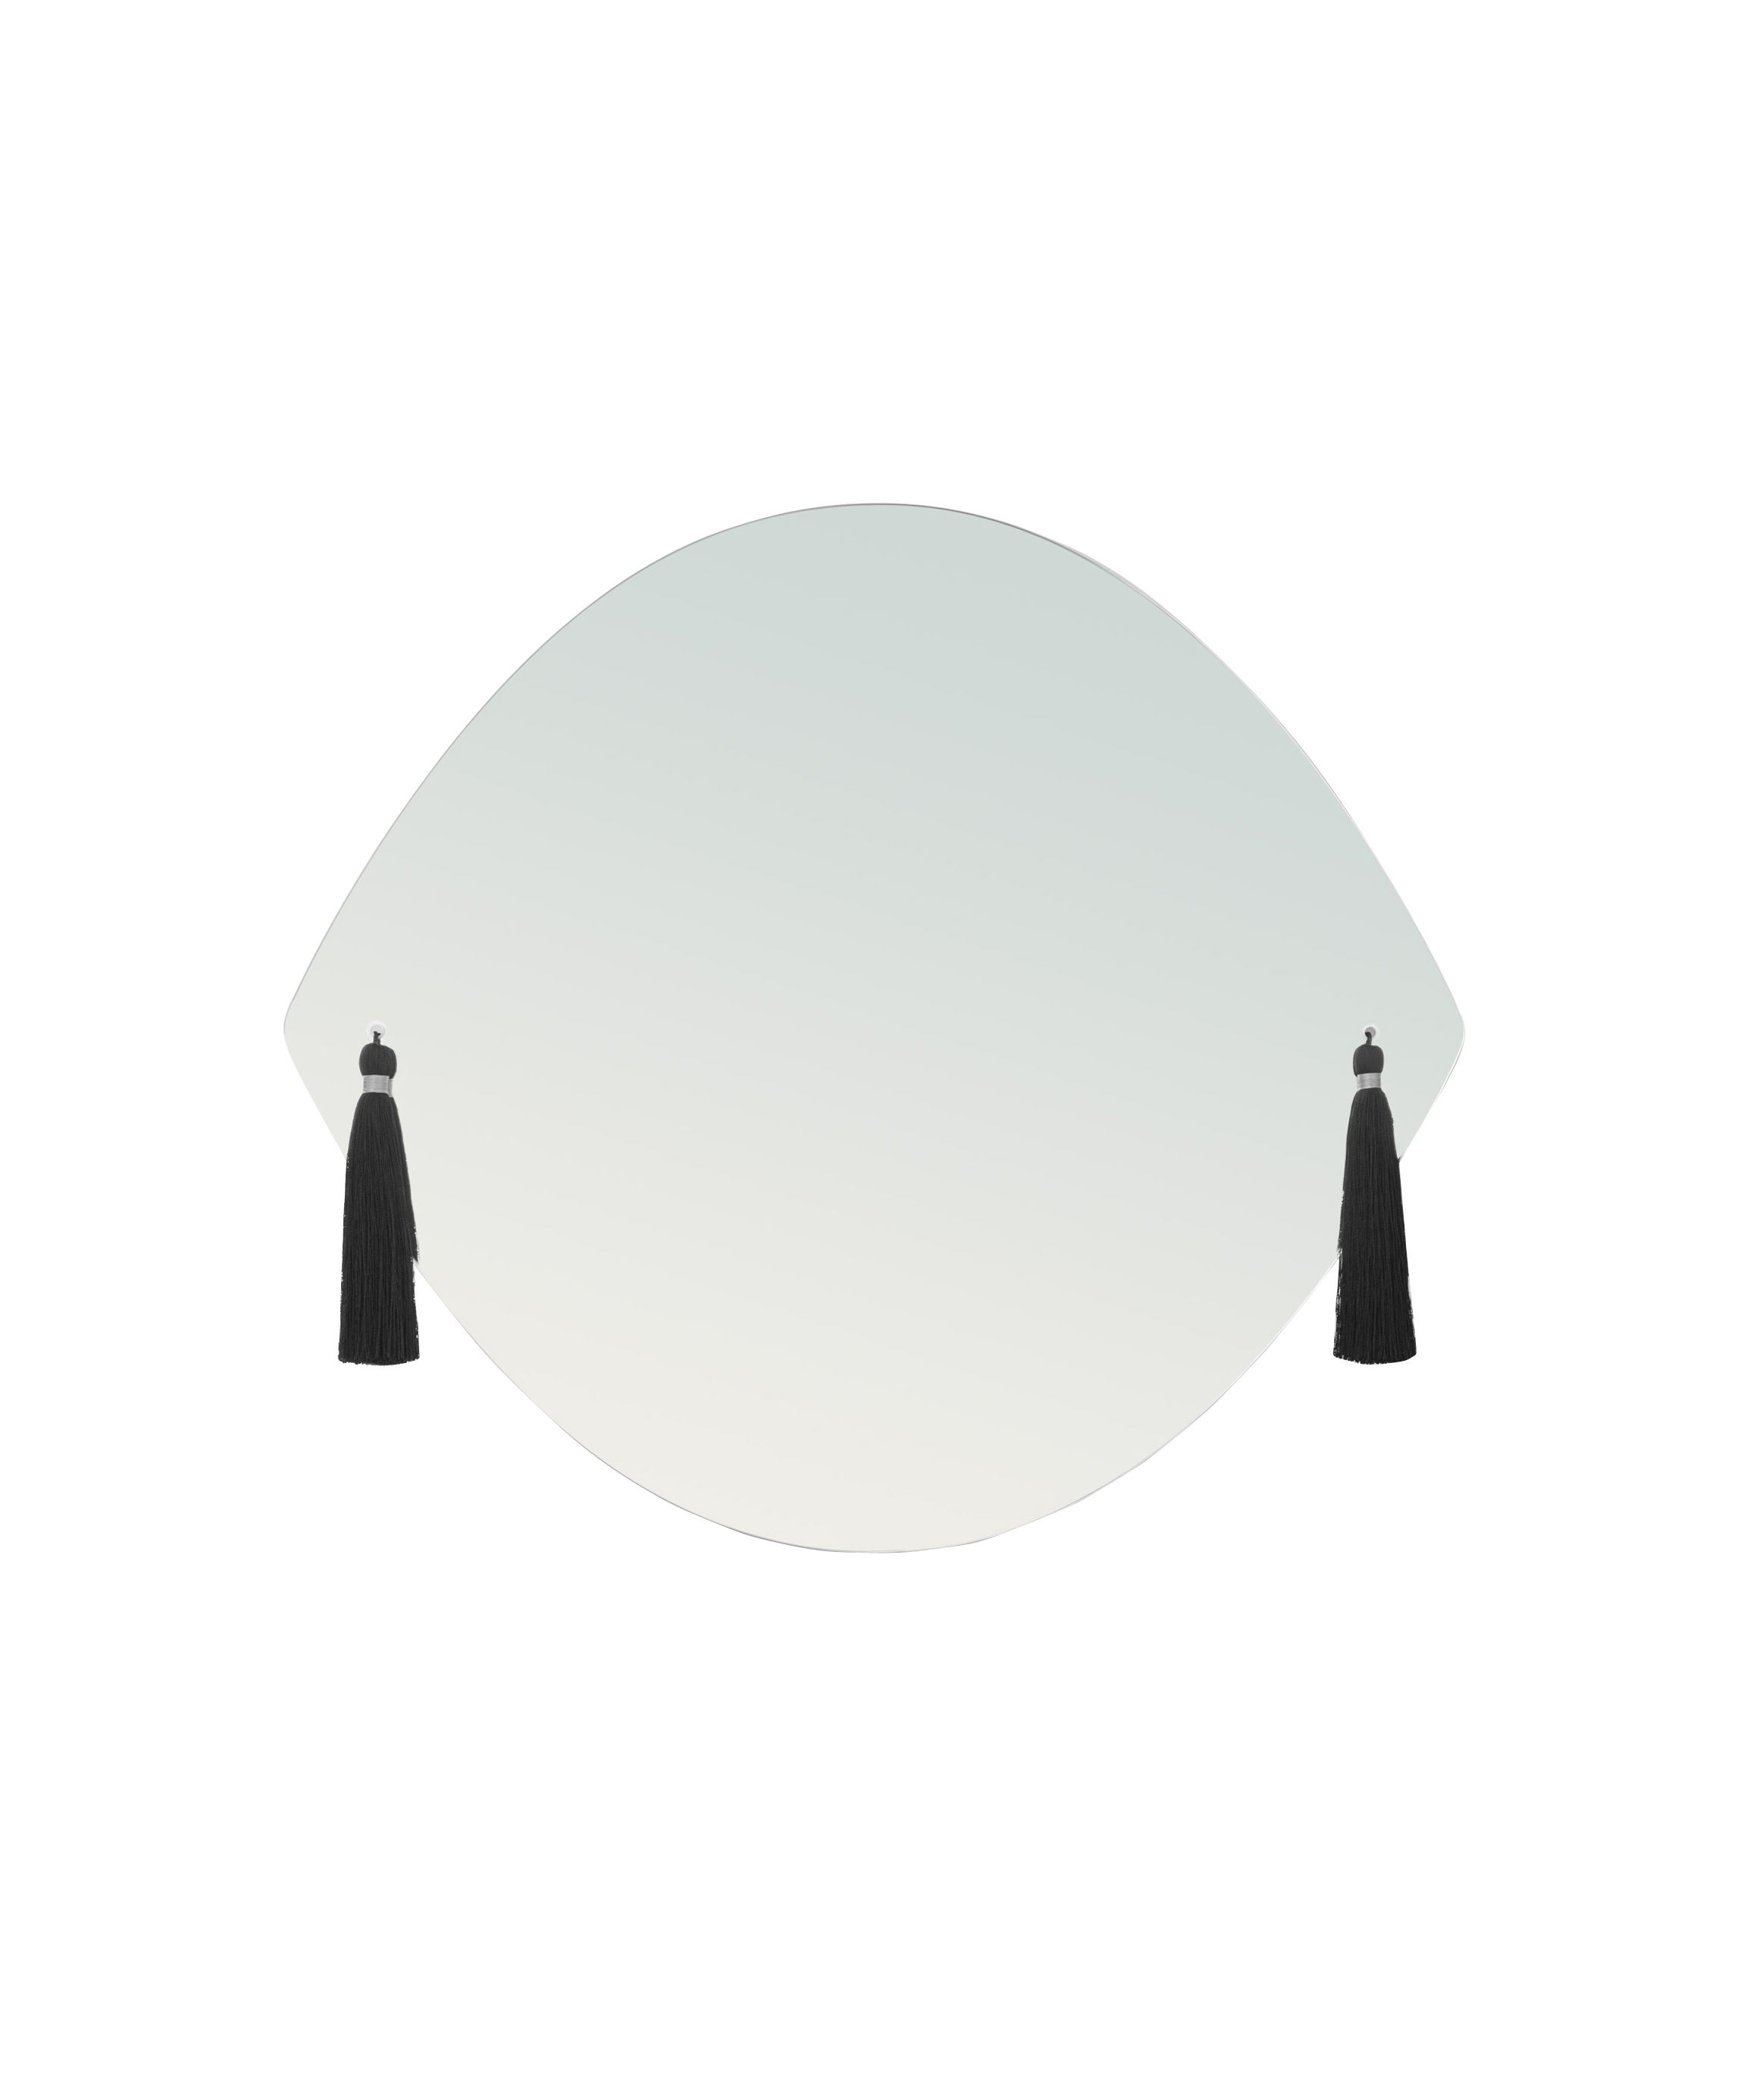 Decoration - Mirrors - Panache Small Wall mirror - 6 removable bobbles by Petite Friture - Smallr - Fabric, Glass